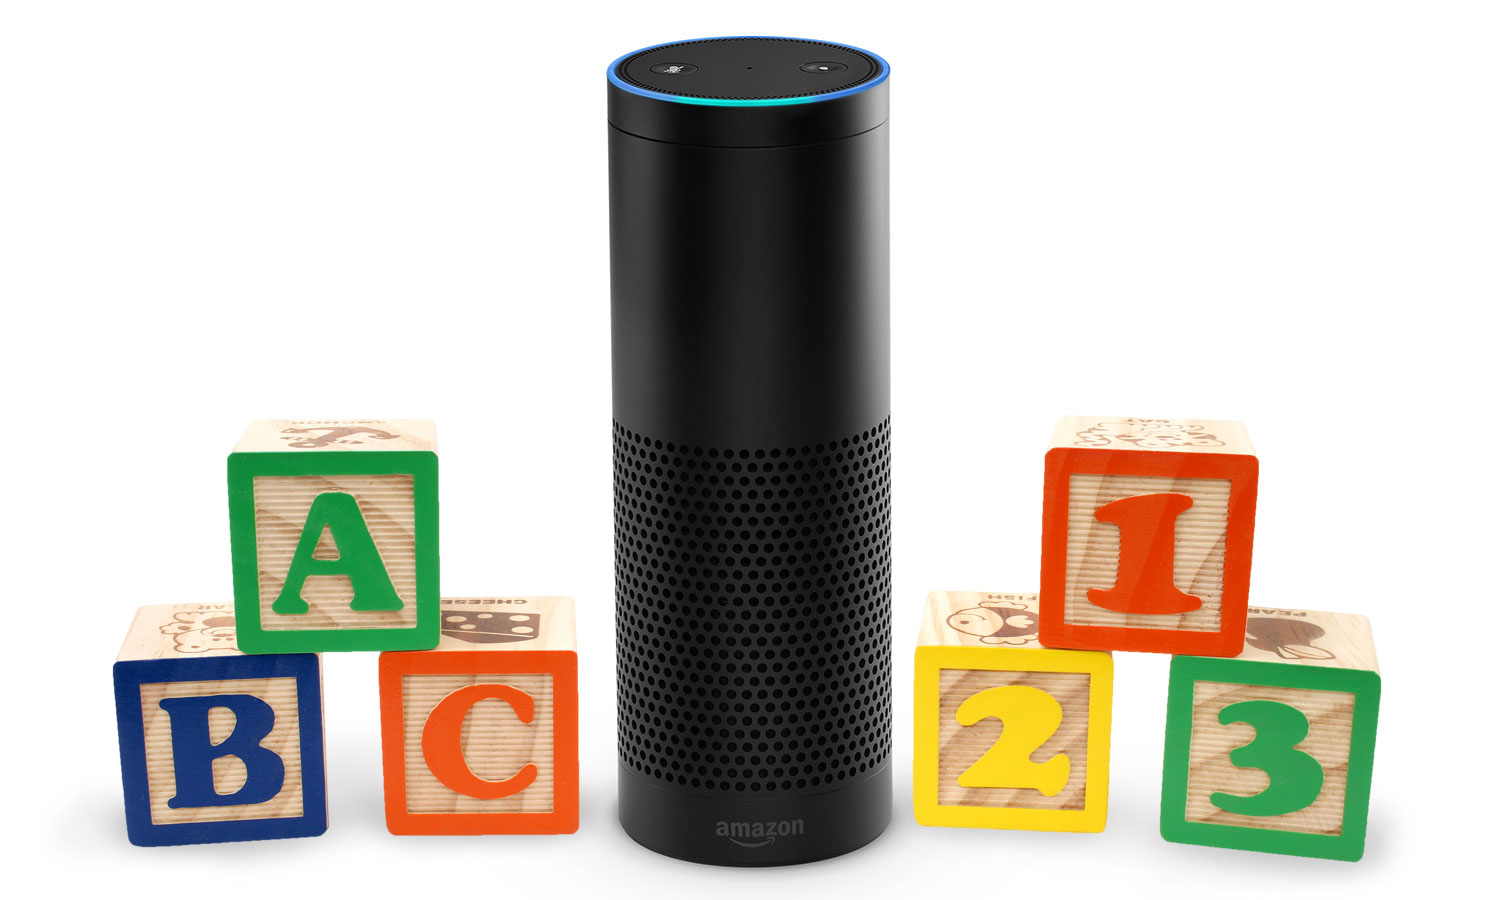 Best Alexa Skills for Kids - Fun and Educational Games, Commands